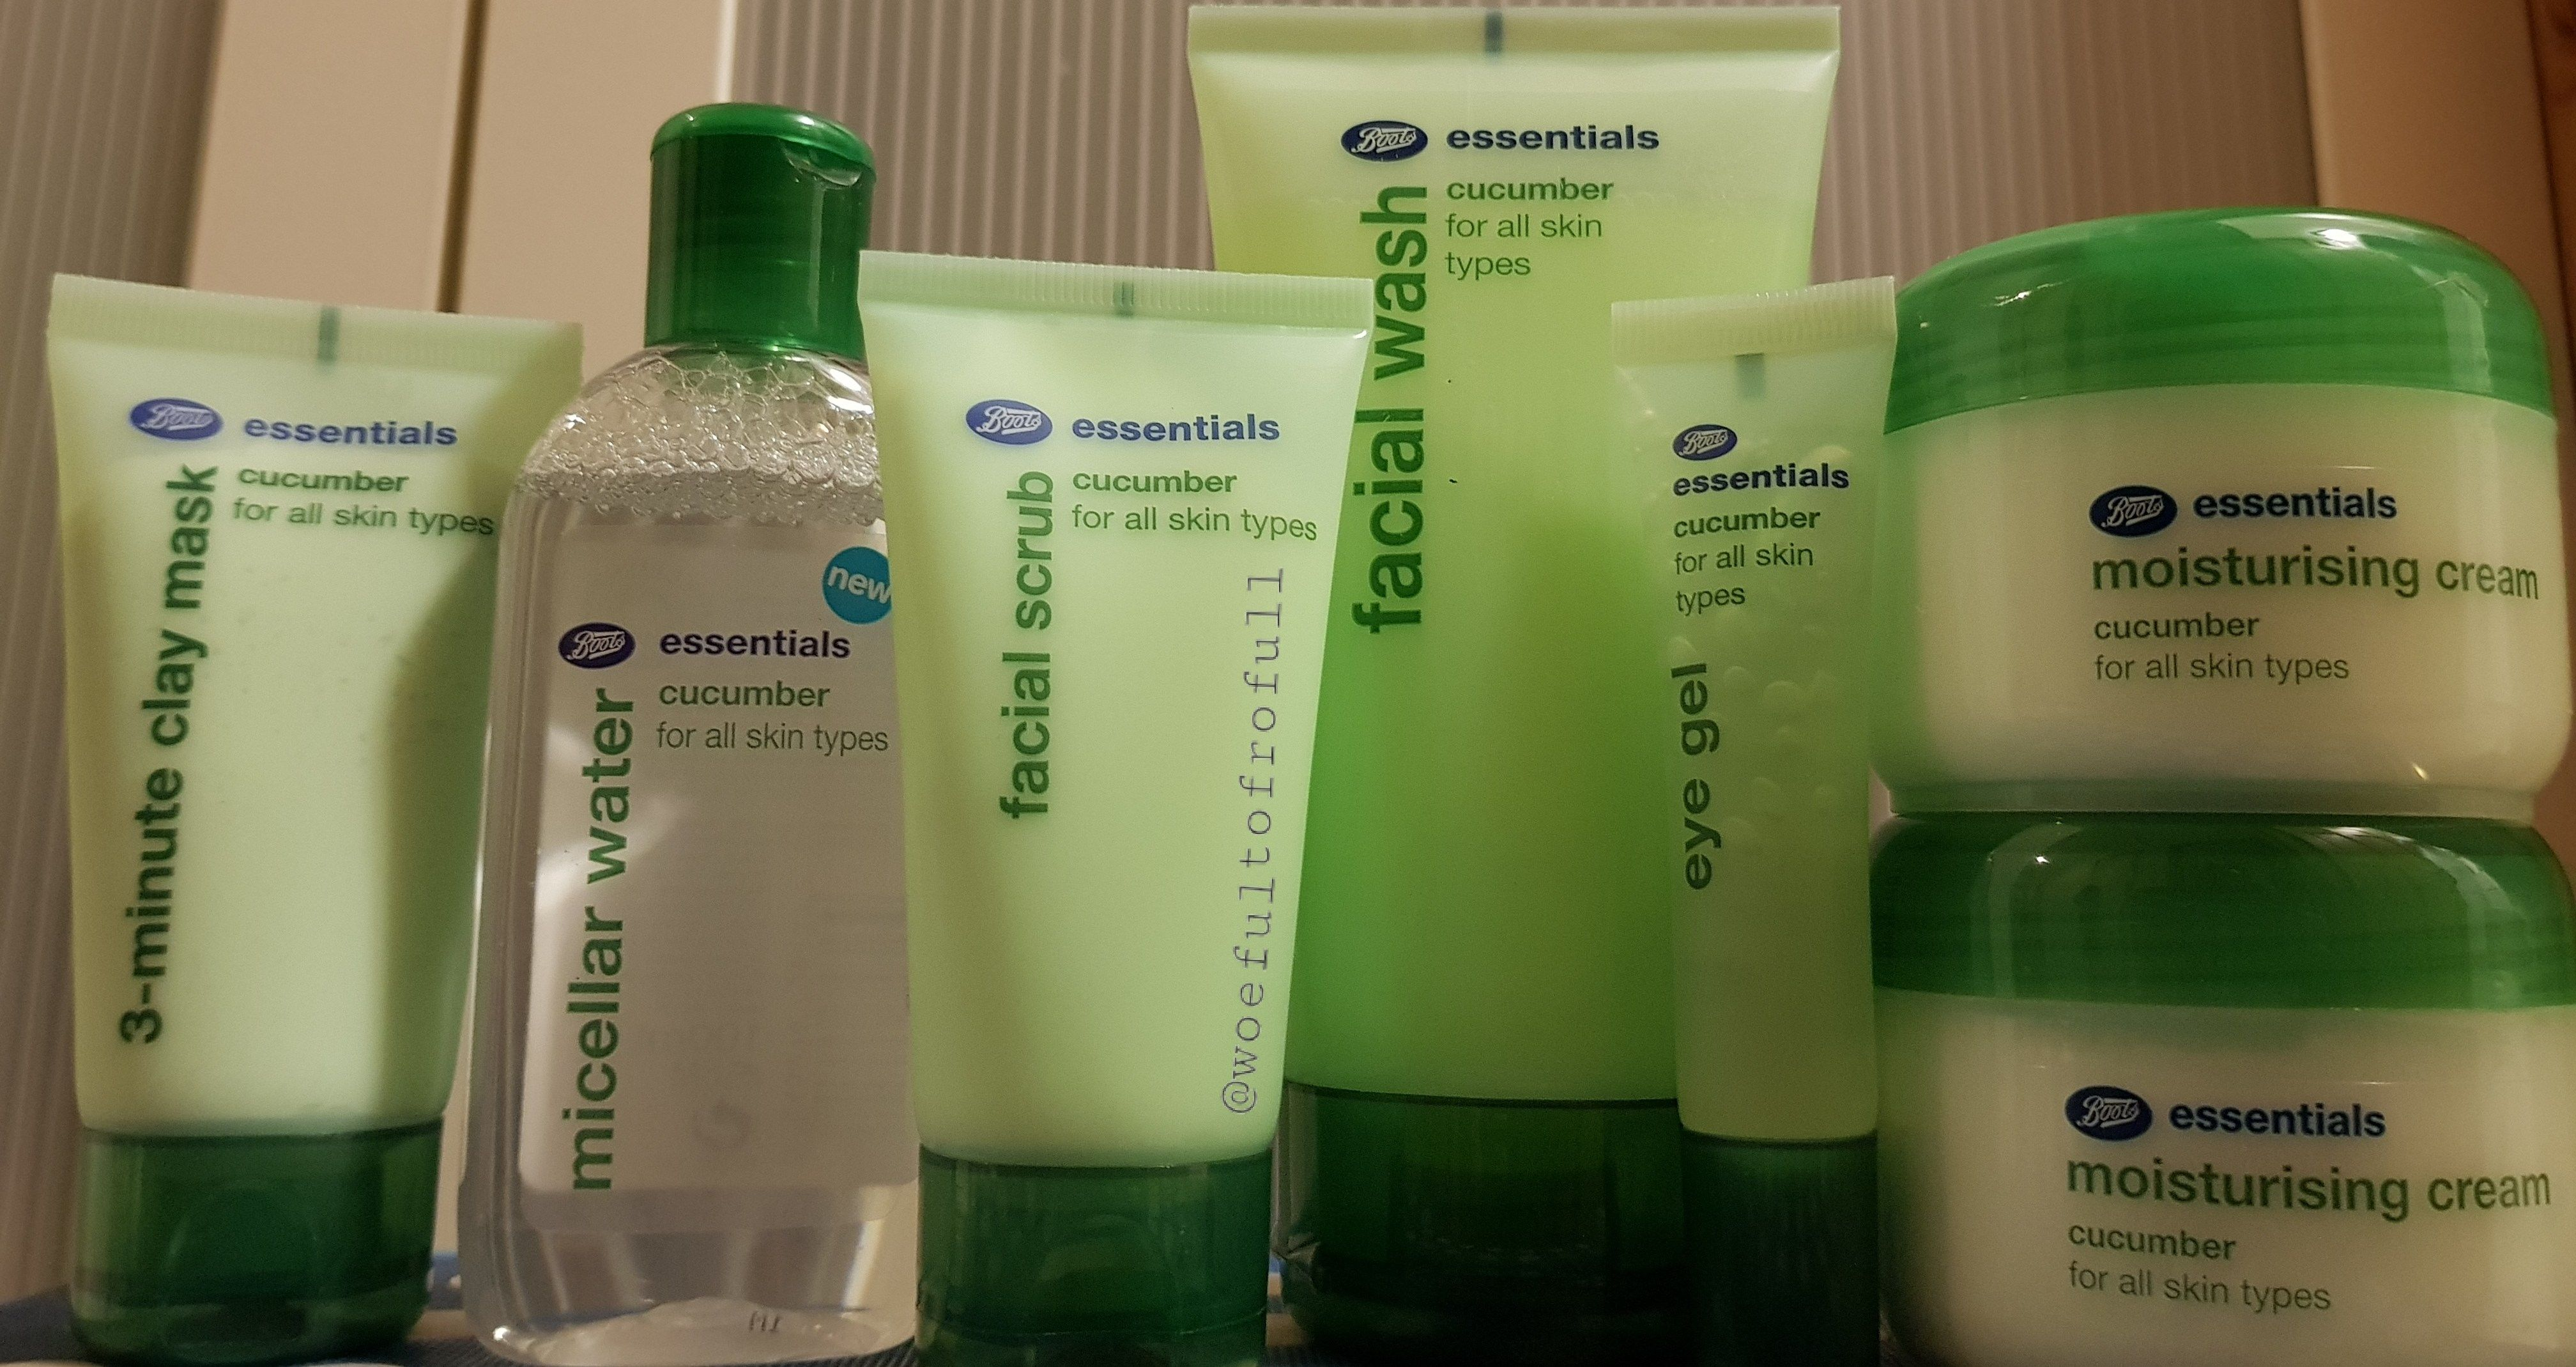 End Of The Range Review Boots Cucumber Essentials Moisturizer